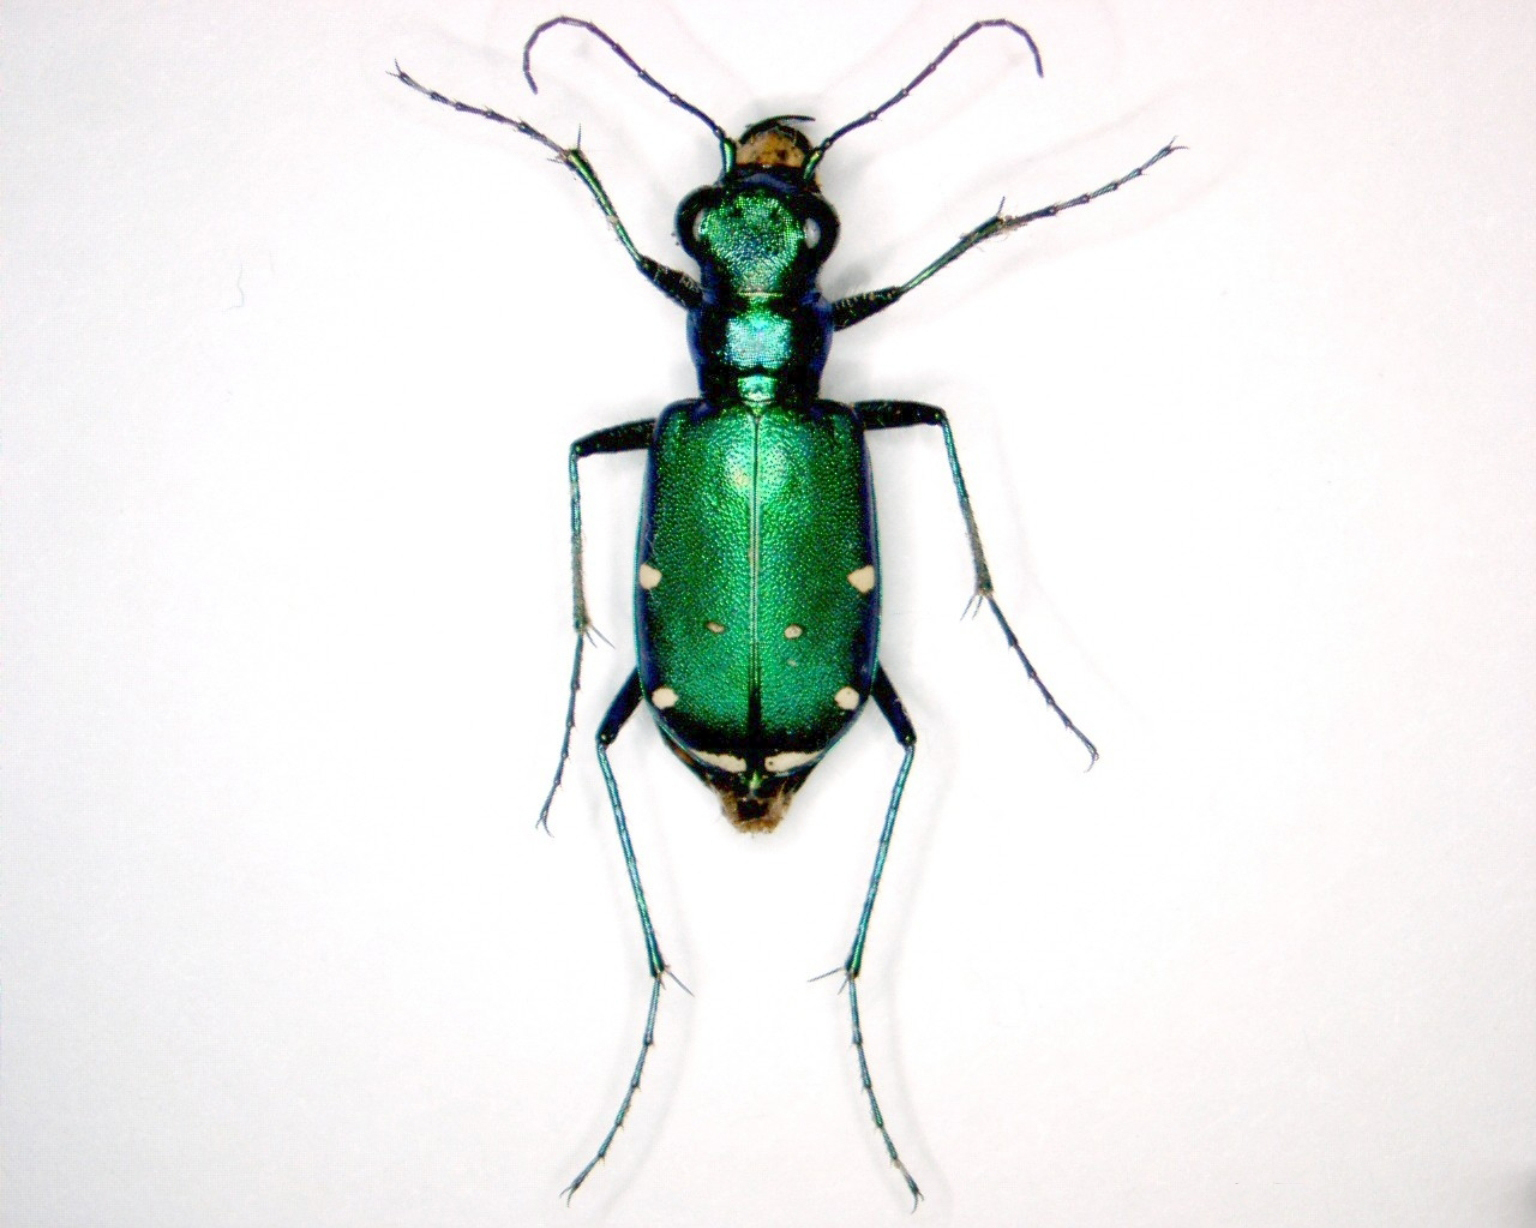 Cincidèle à six points ( Cicindela sexguttata ). © Pennsylvania Department of Conservation and Natural Resources – Forestry Archive, Bugwood.org